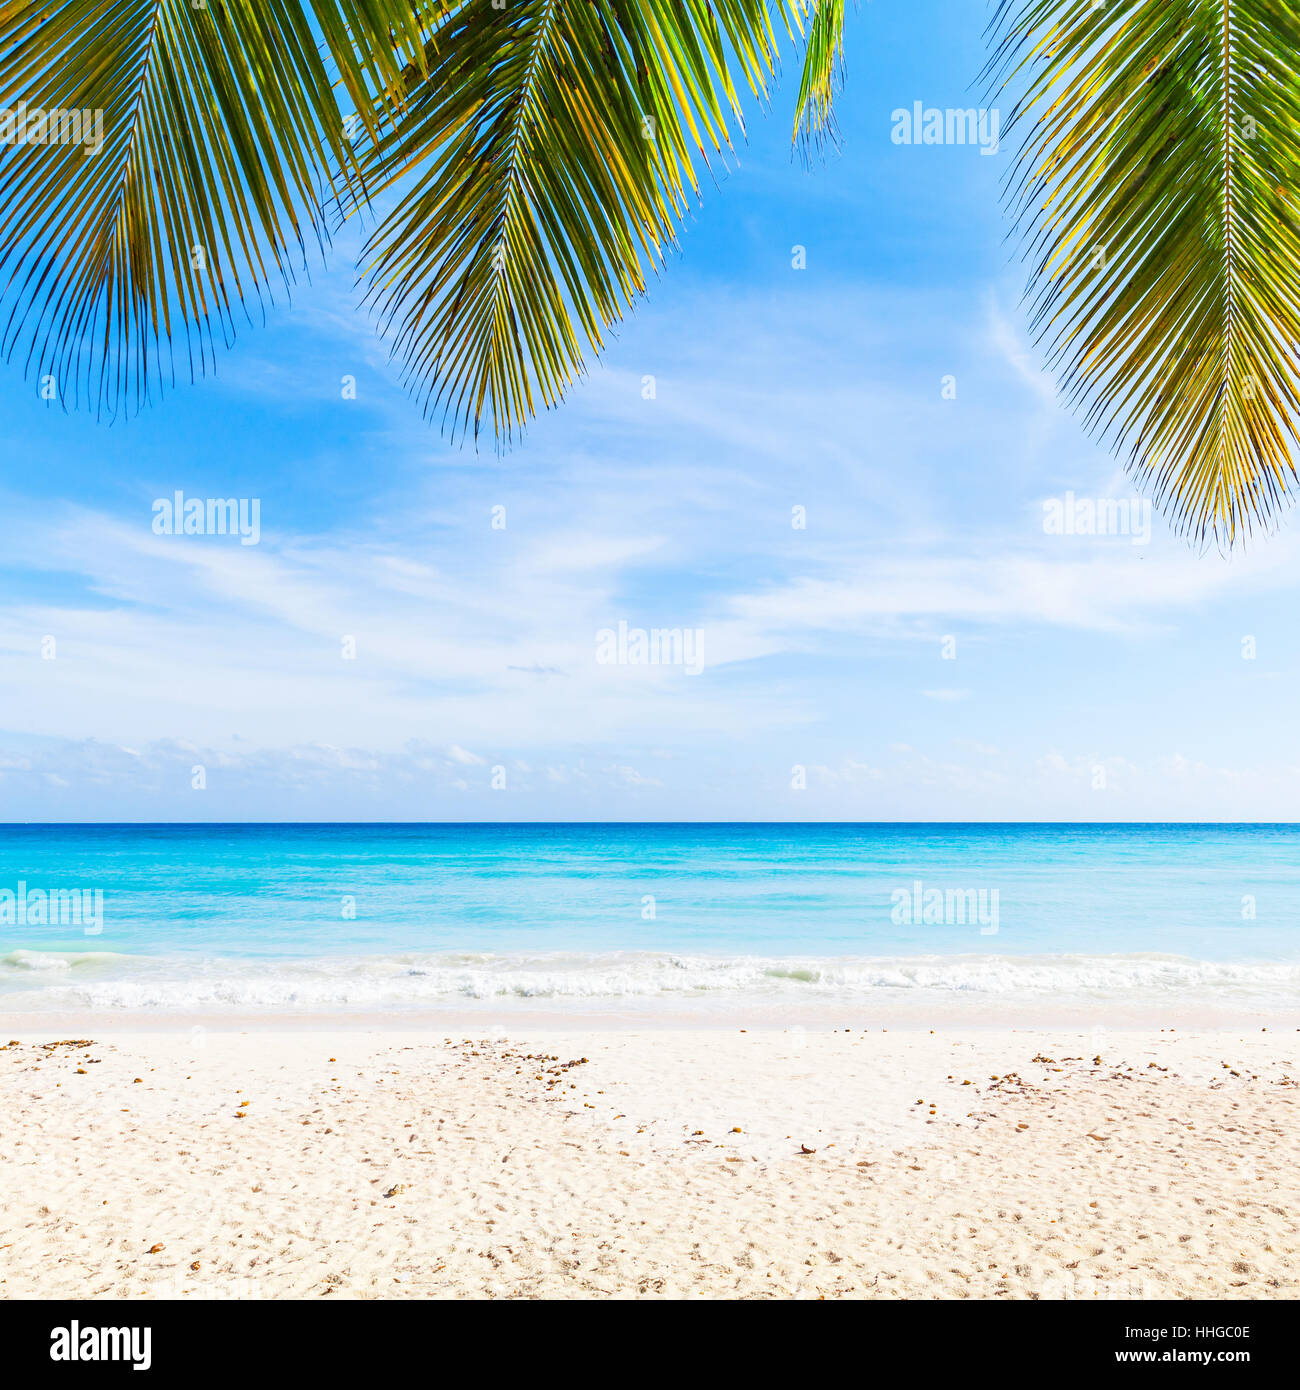 Exotic Beach: Tropical Beach Background, White Sand, Azure Water And